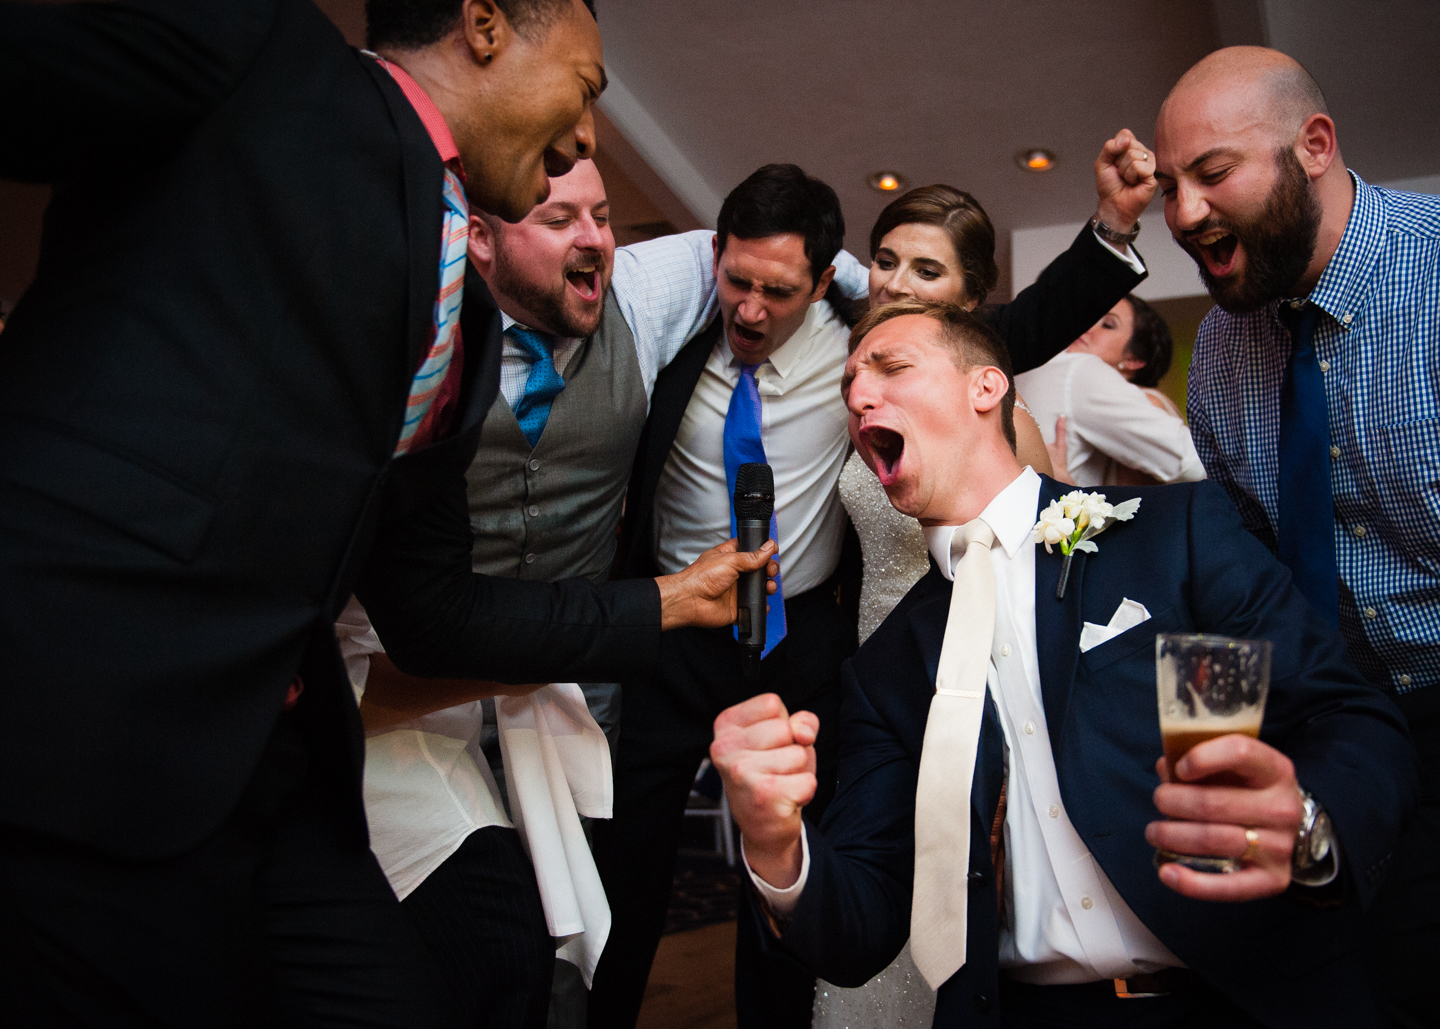 groom sings on the dance floor with the band